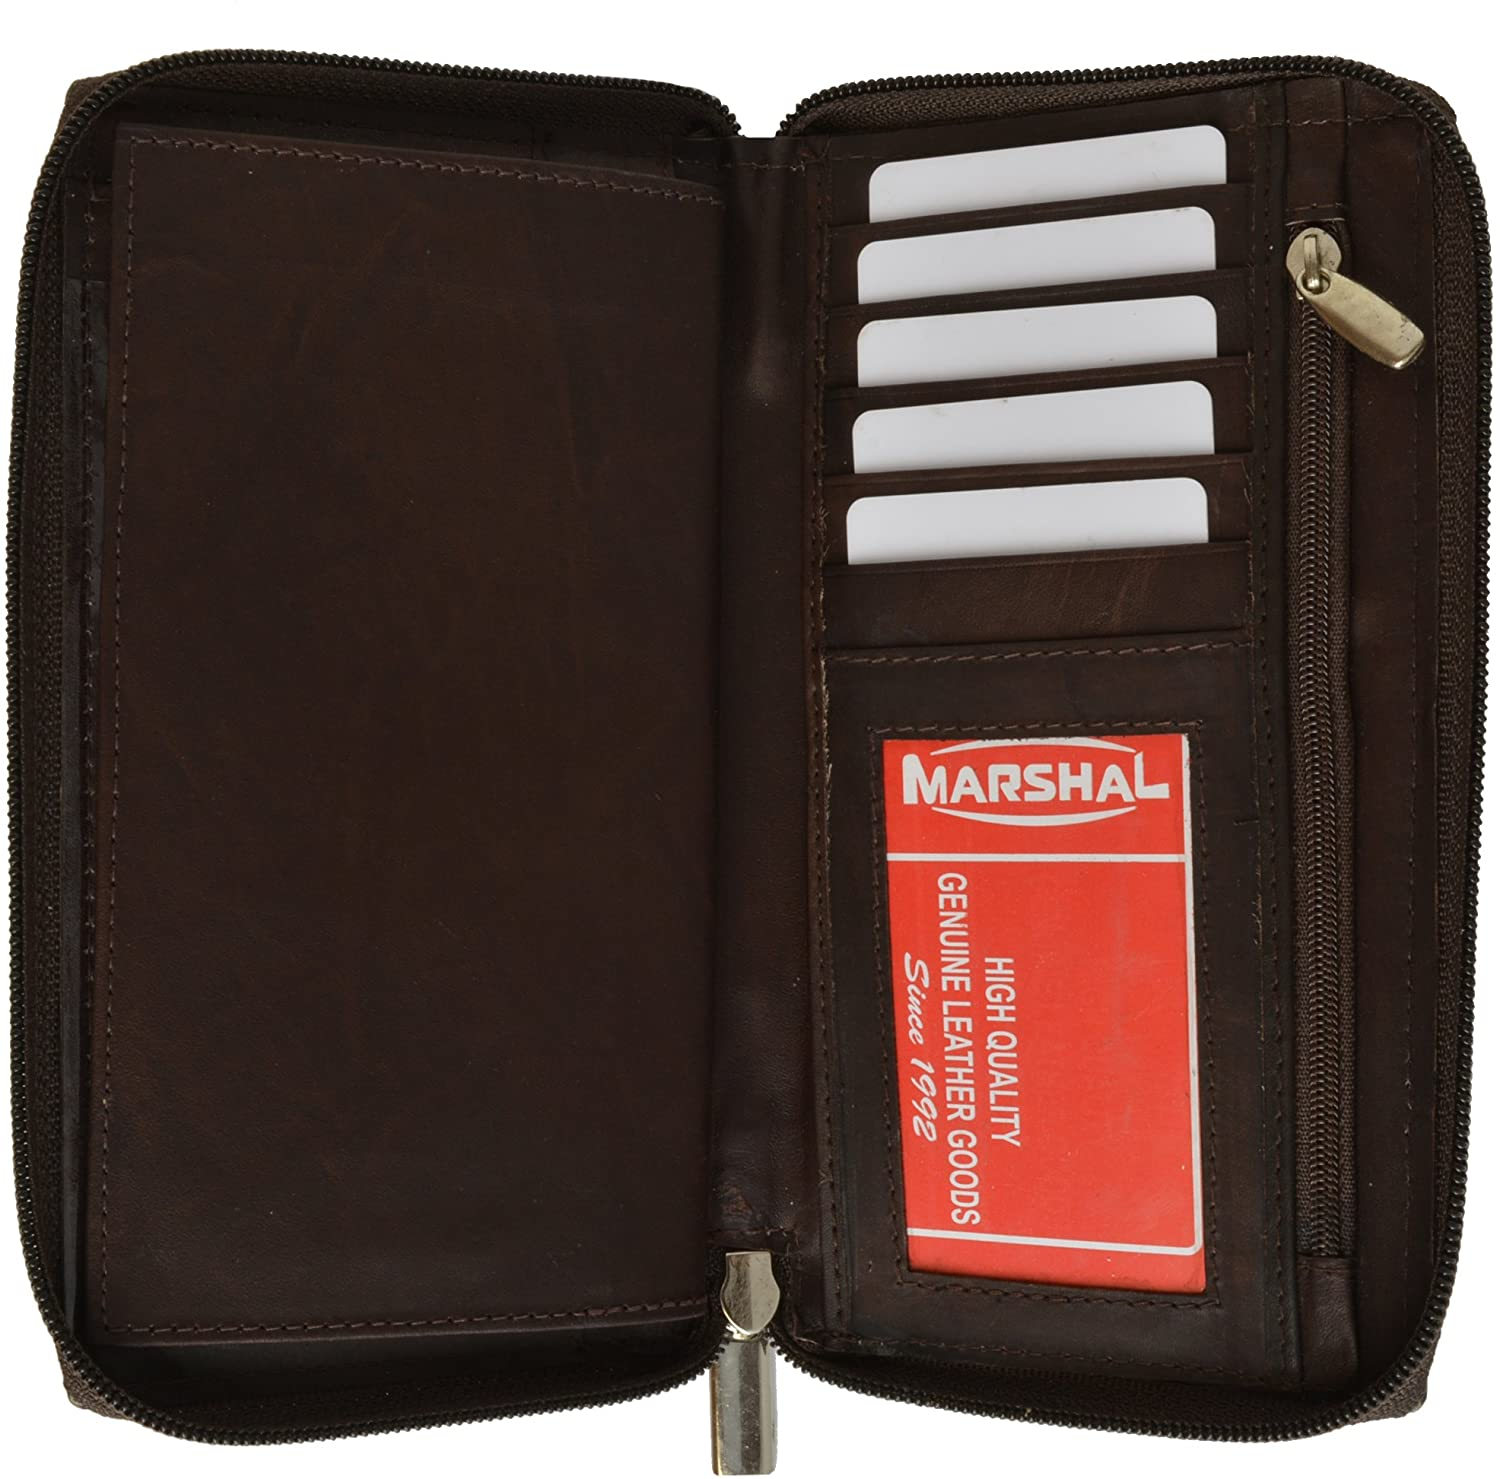 Marshal Checkbook 70% OFF Outlet Holder Wallet with Around Ranking TOP15 Pull and Zipper All